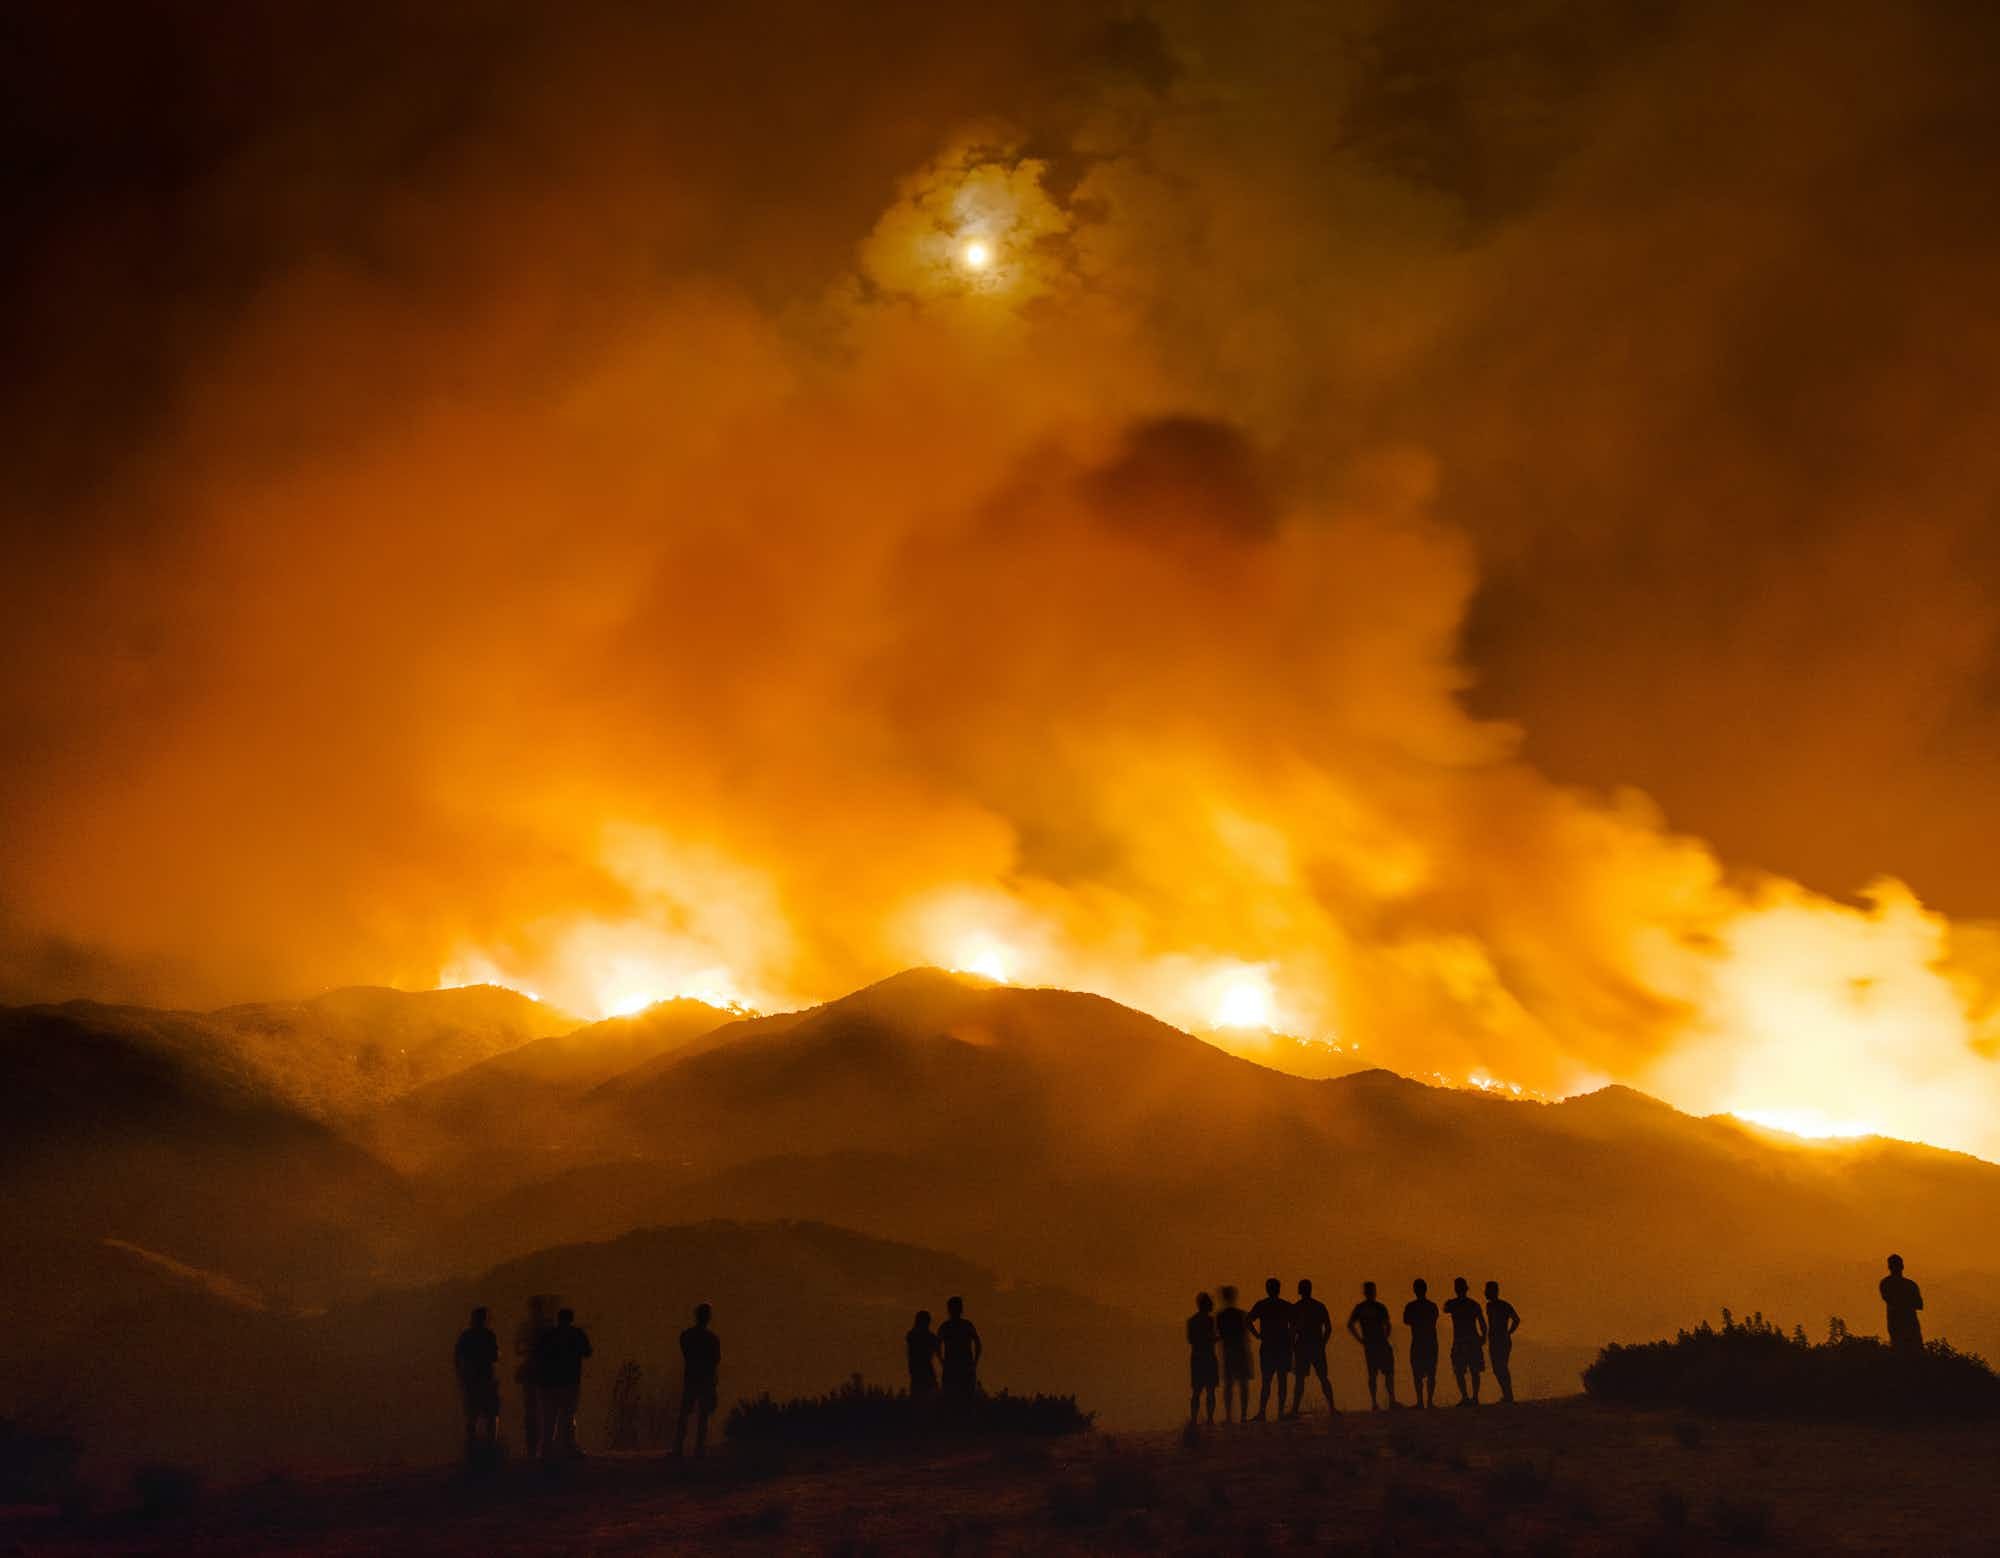 Los Angeles photographer comes face to face with wildfire